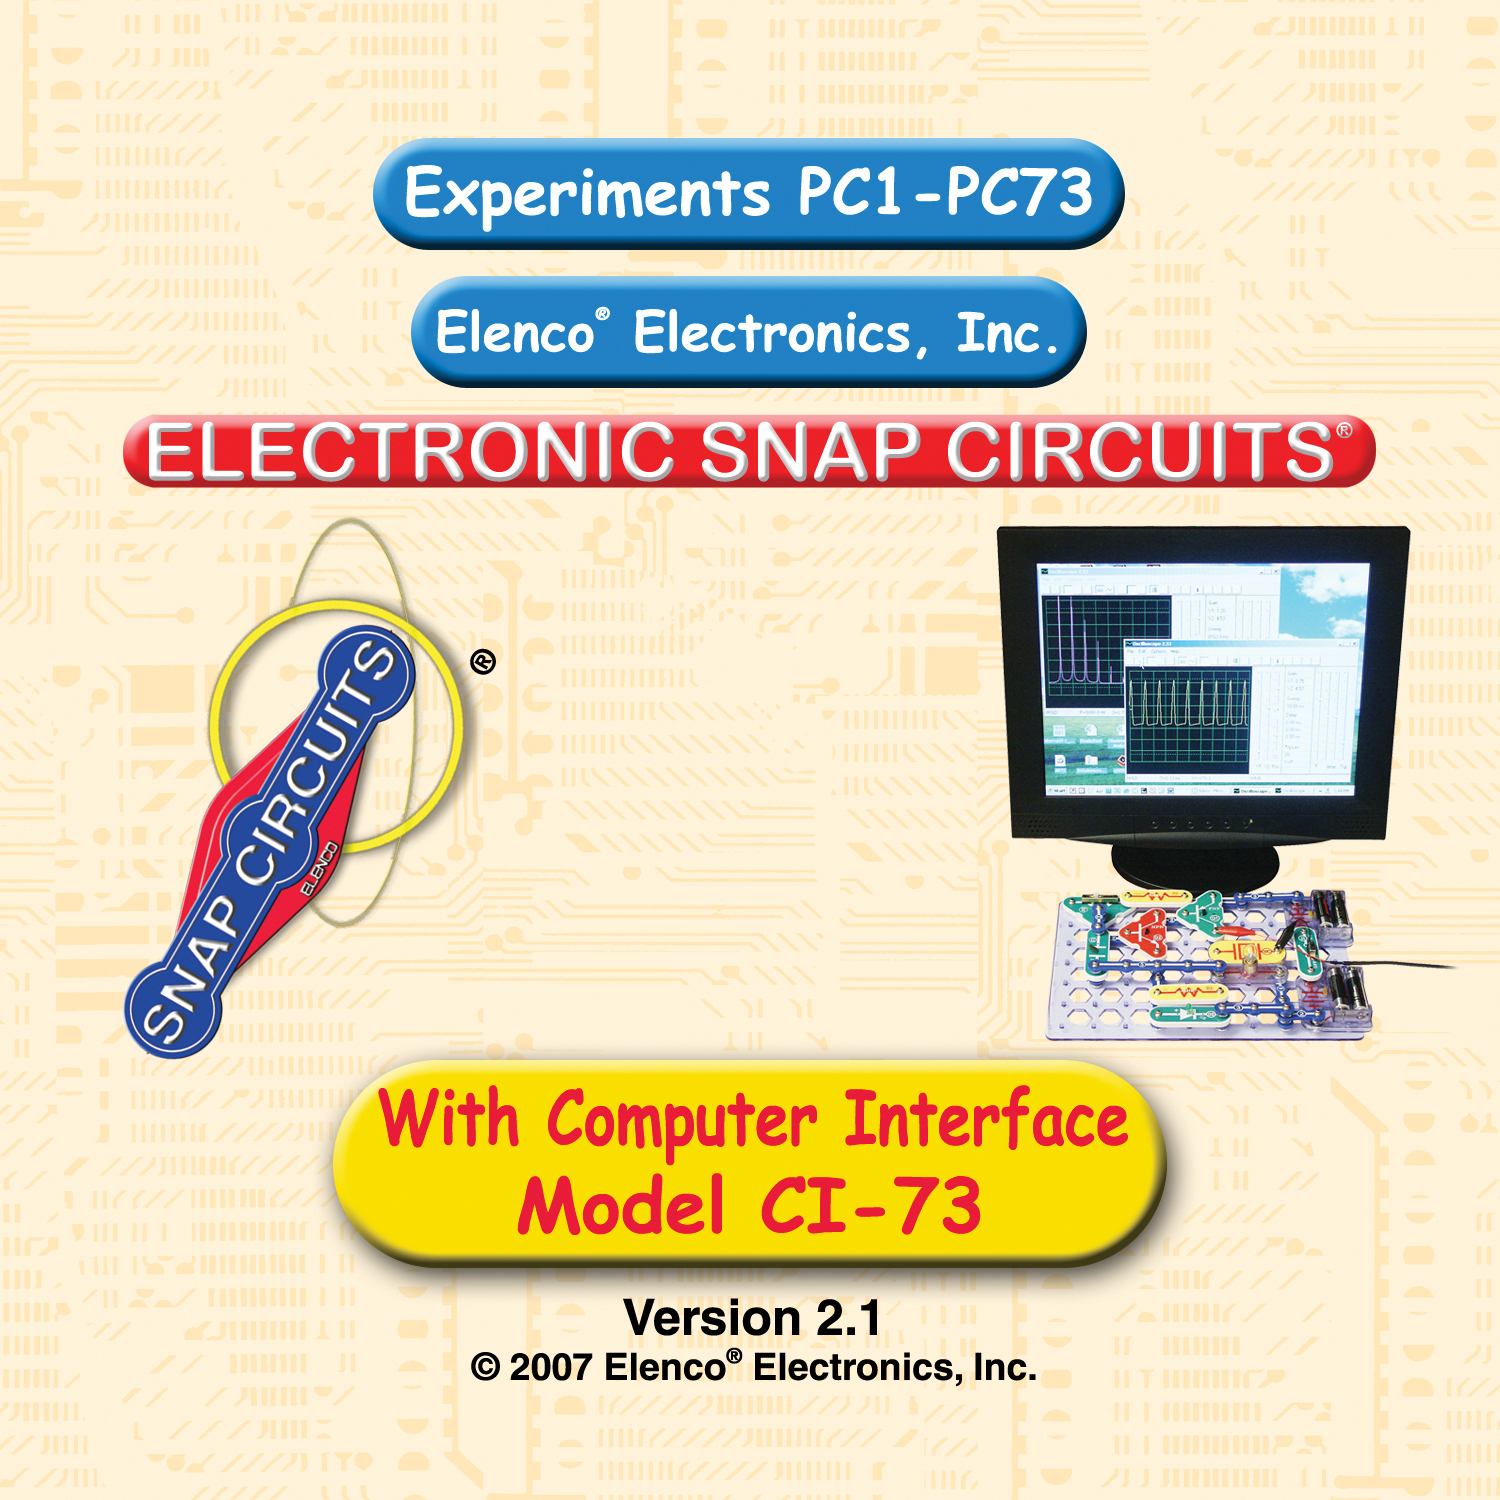 Elenco Sc 300 Compare Prices At Nextag Junior Electronics Projects Kit Walmart Circuit Kits Computer Inteface For Snap Circuits